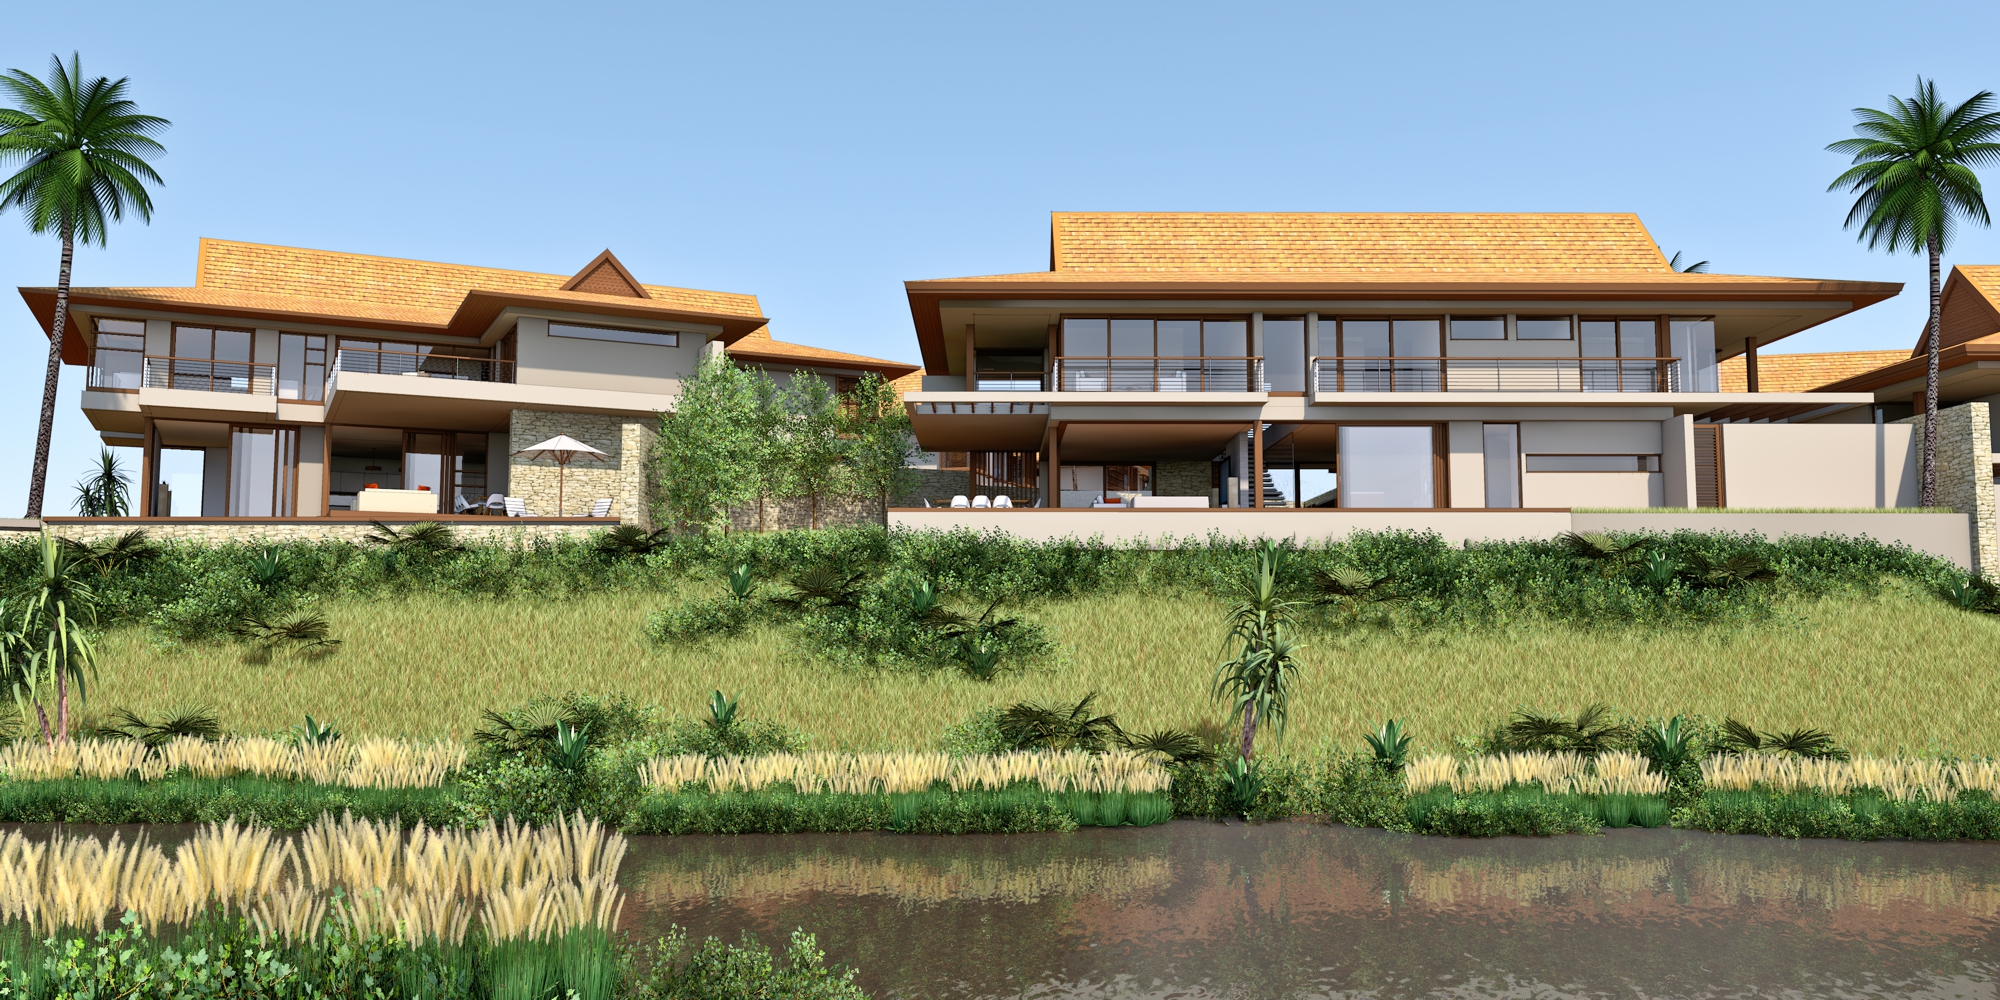 Group7 Properties Residential Plot 5 And Plan In Zimbali Golf Estate Kzn No Transfer Duty